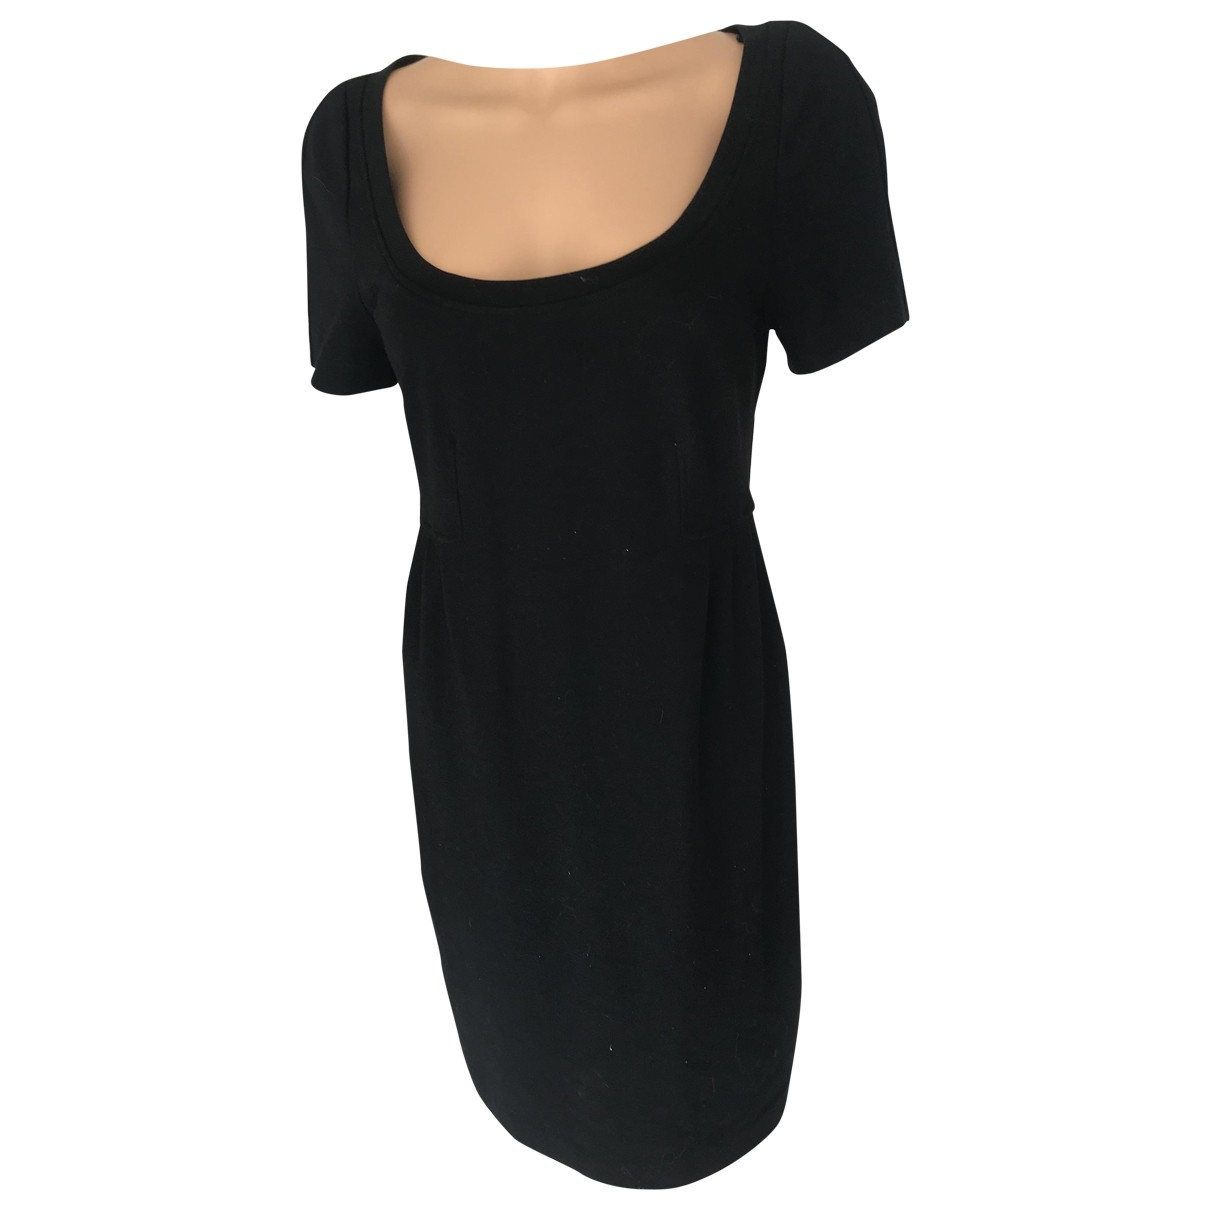 Diane Von Furstenberg \N Black Cotton - elasthane dress for Women 34 FR